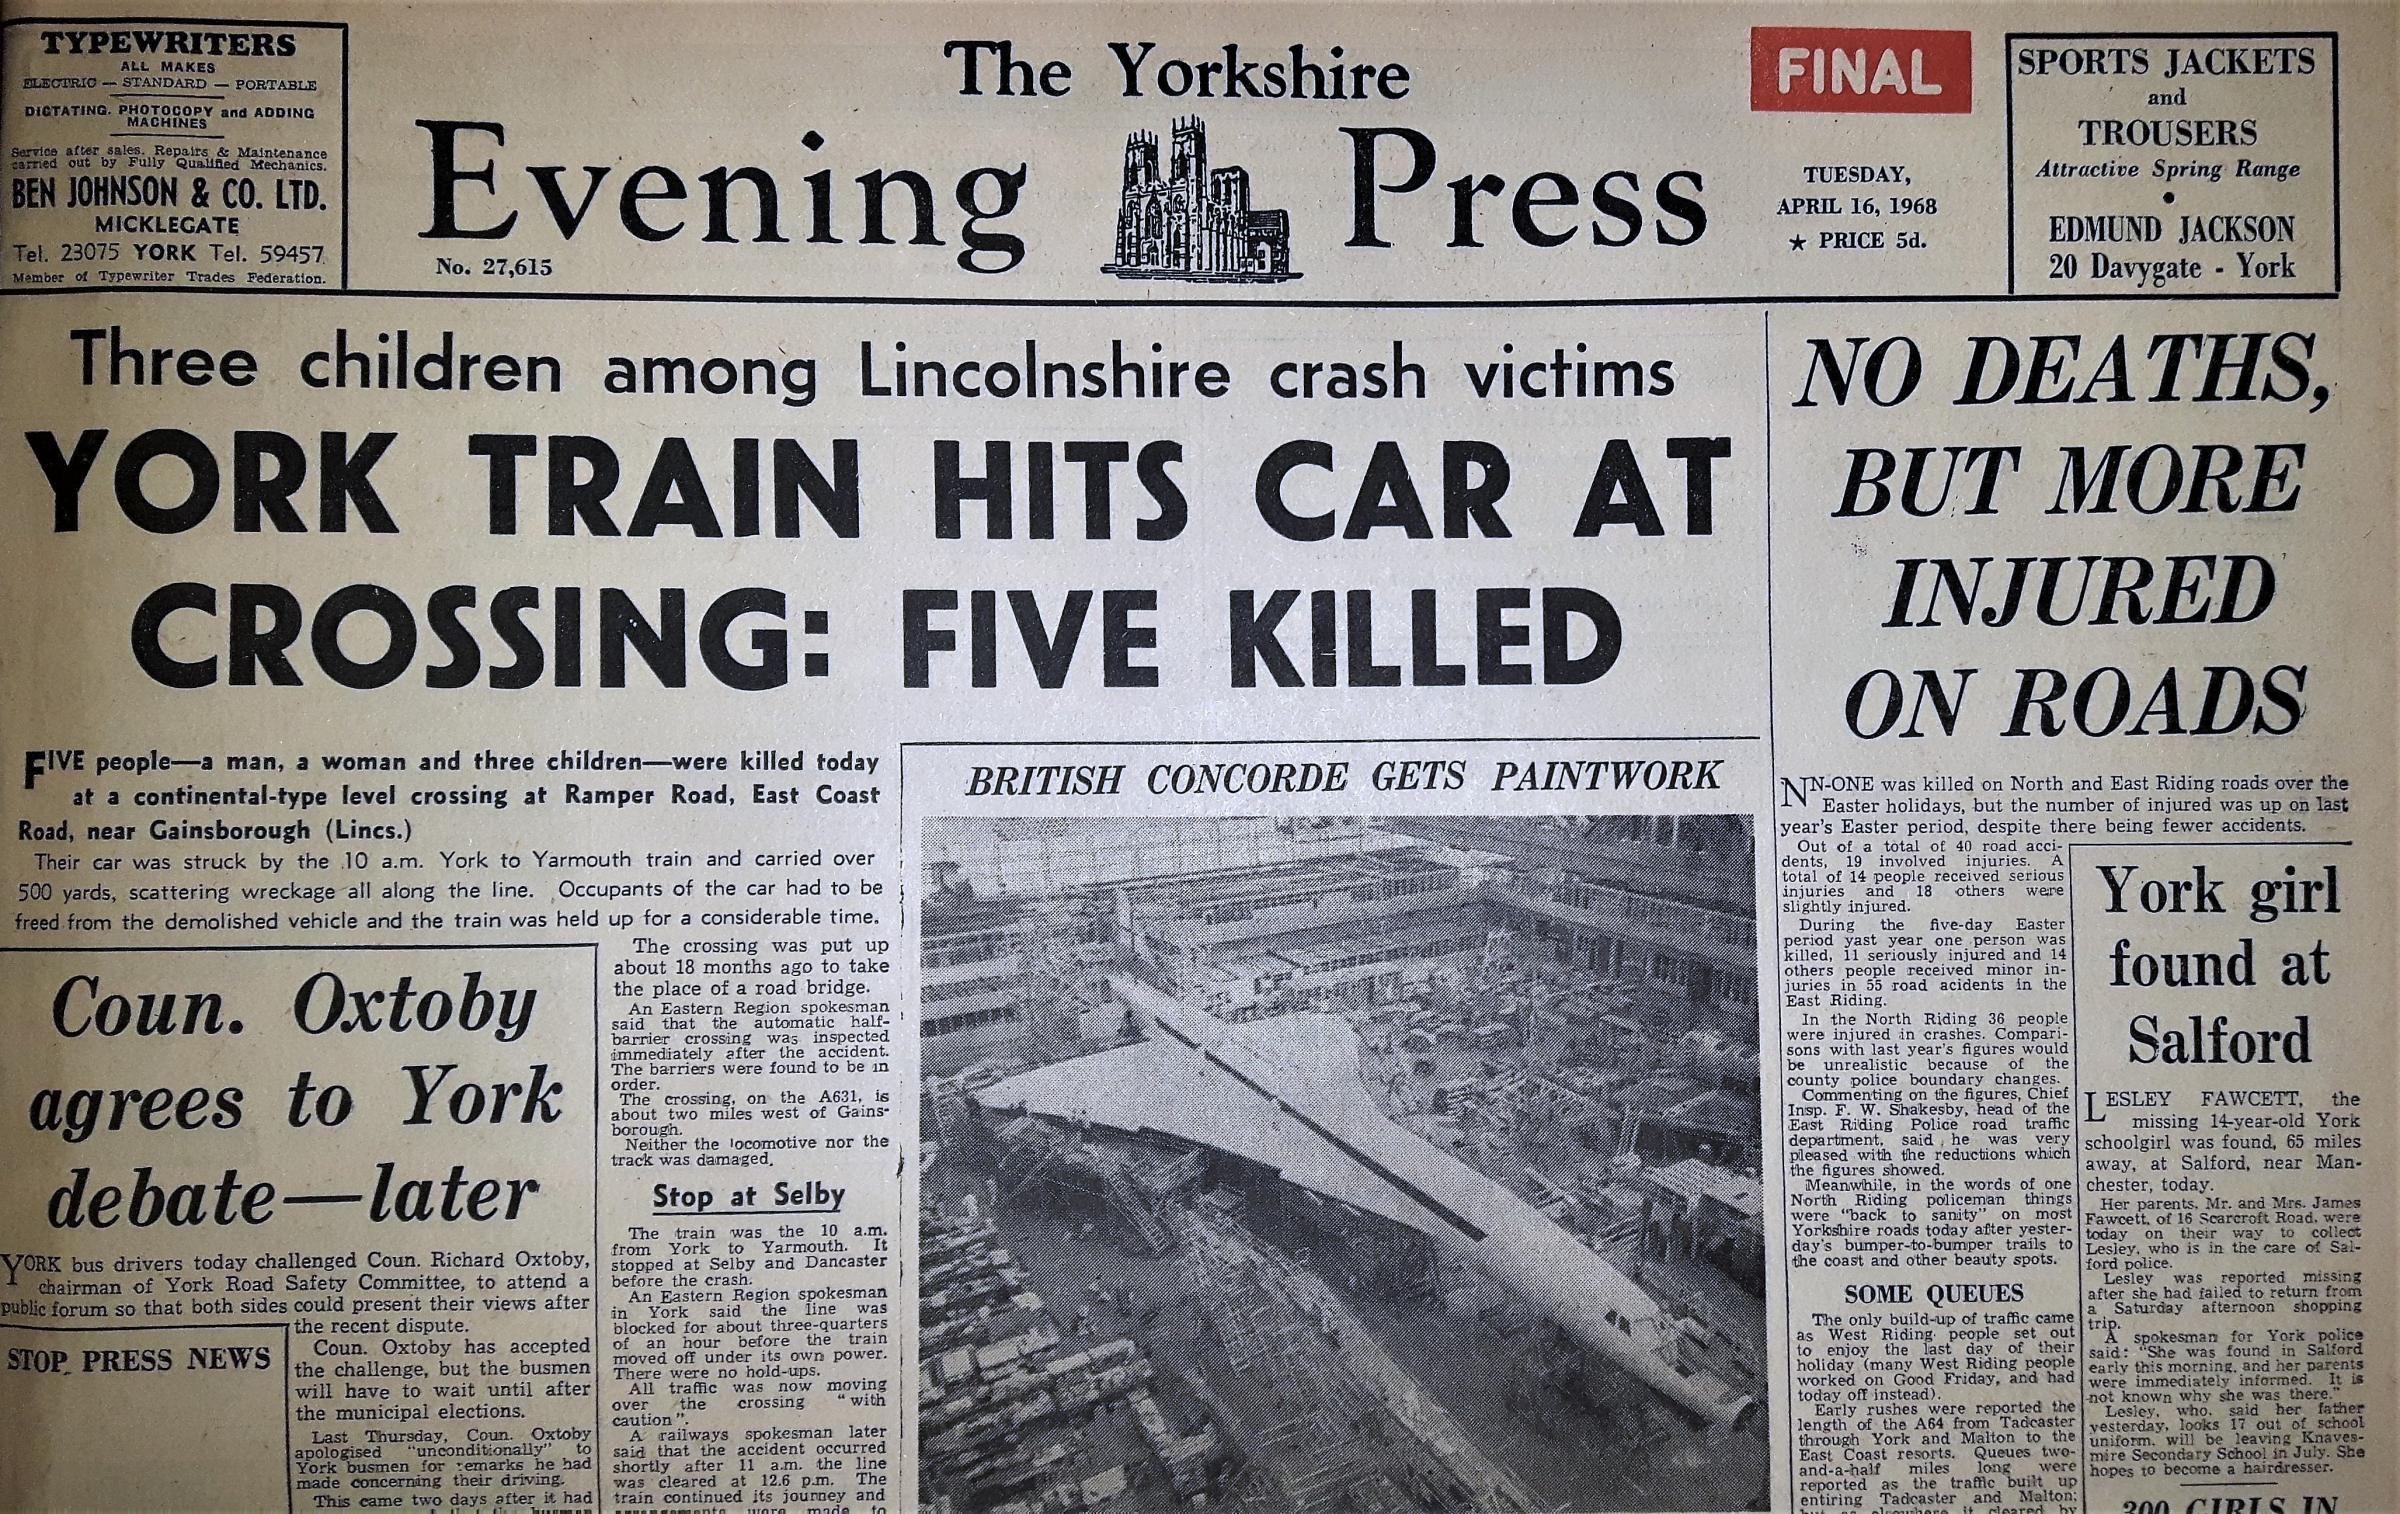 The front page of the Yorkshire Evening Press from April 16, 1968